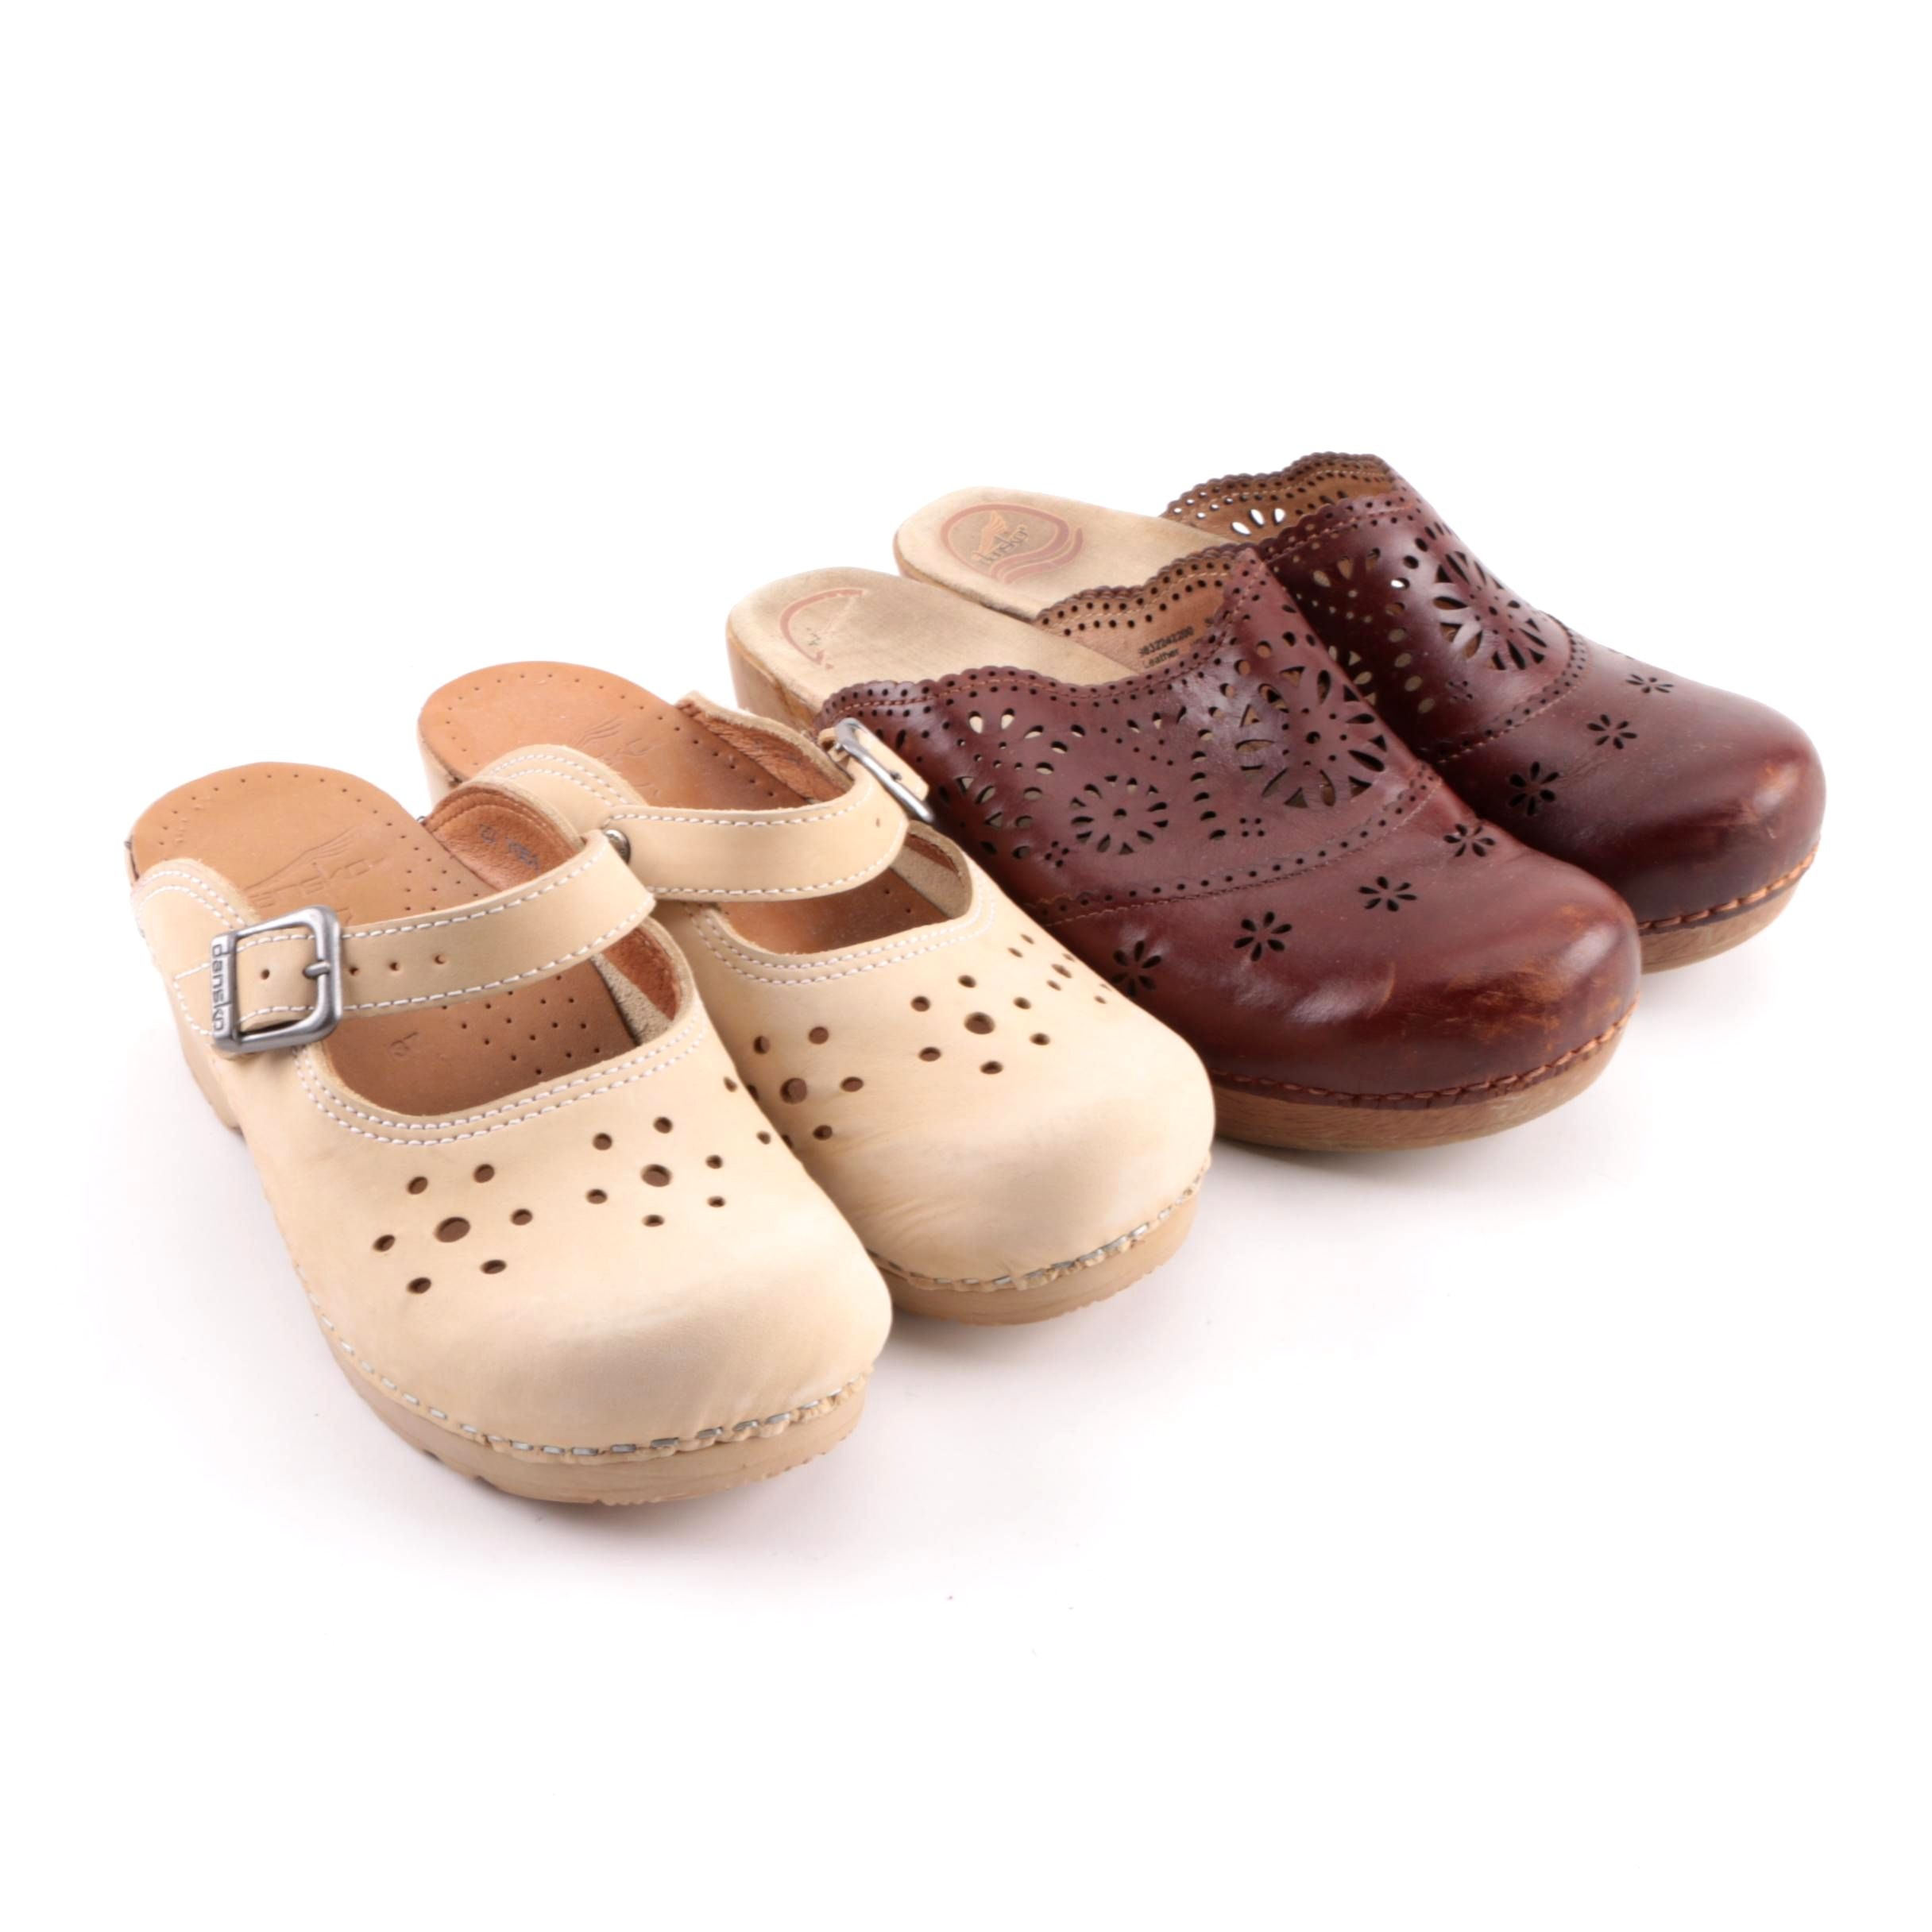 Women's Dansko Suede and Leather Clogs with Pierced Details